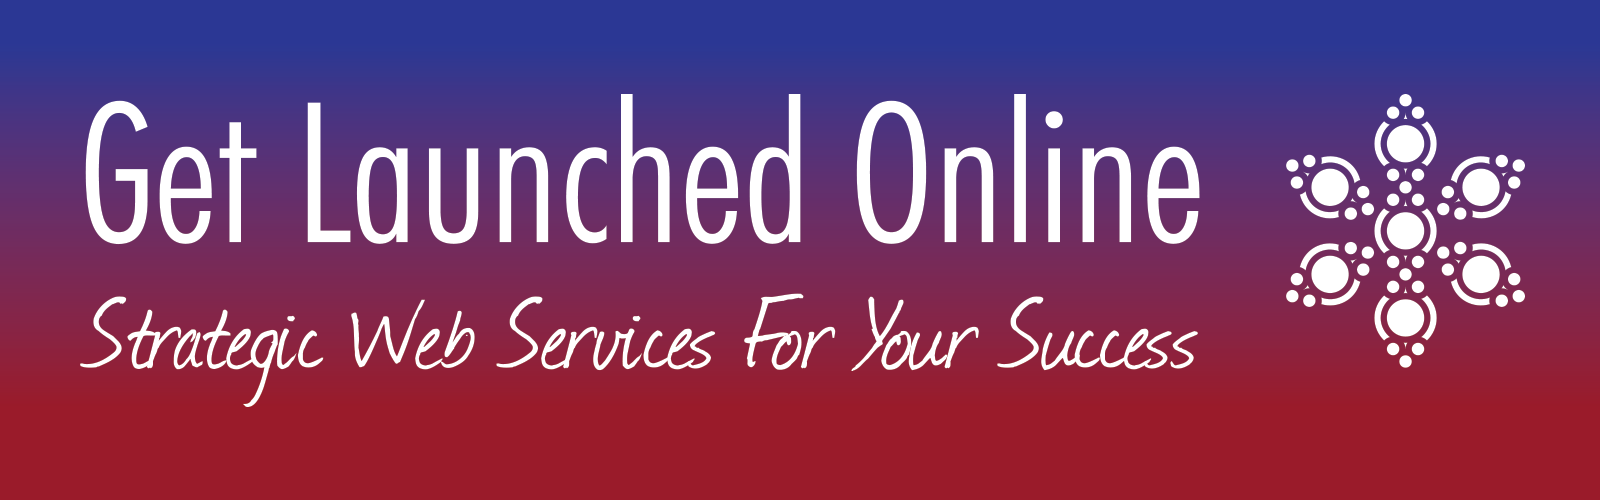 Get launched Online Banner